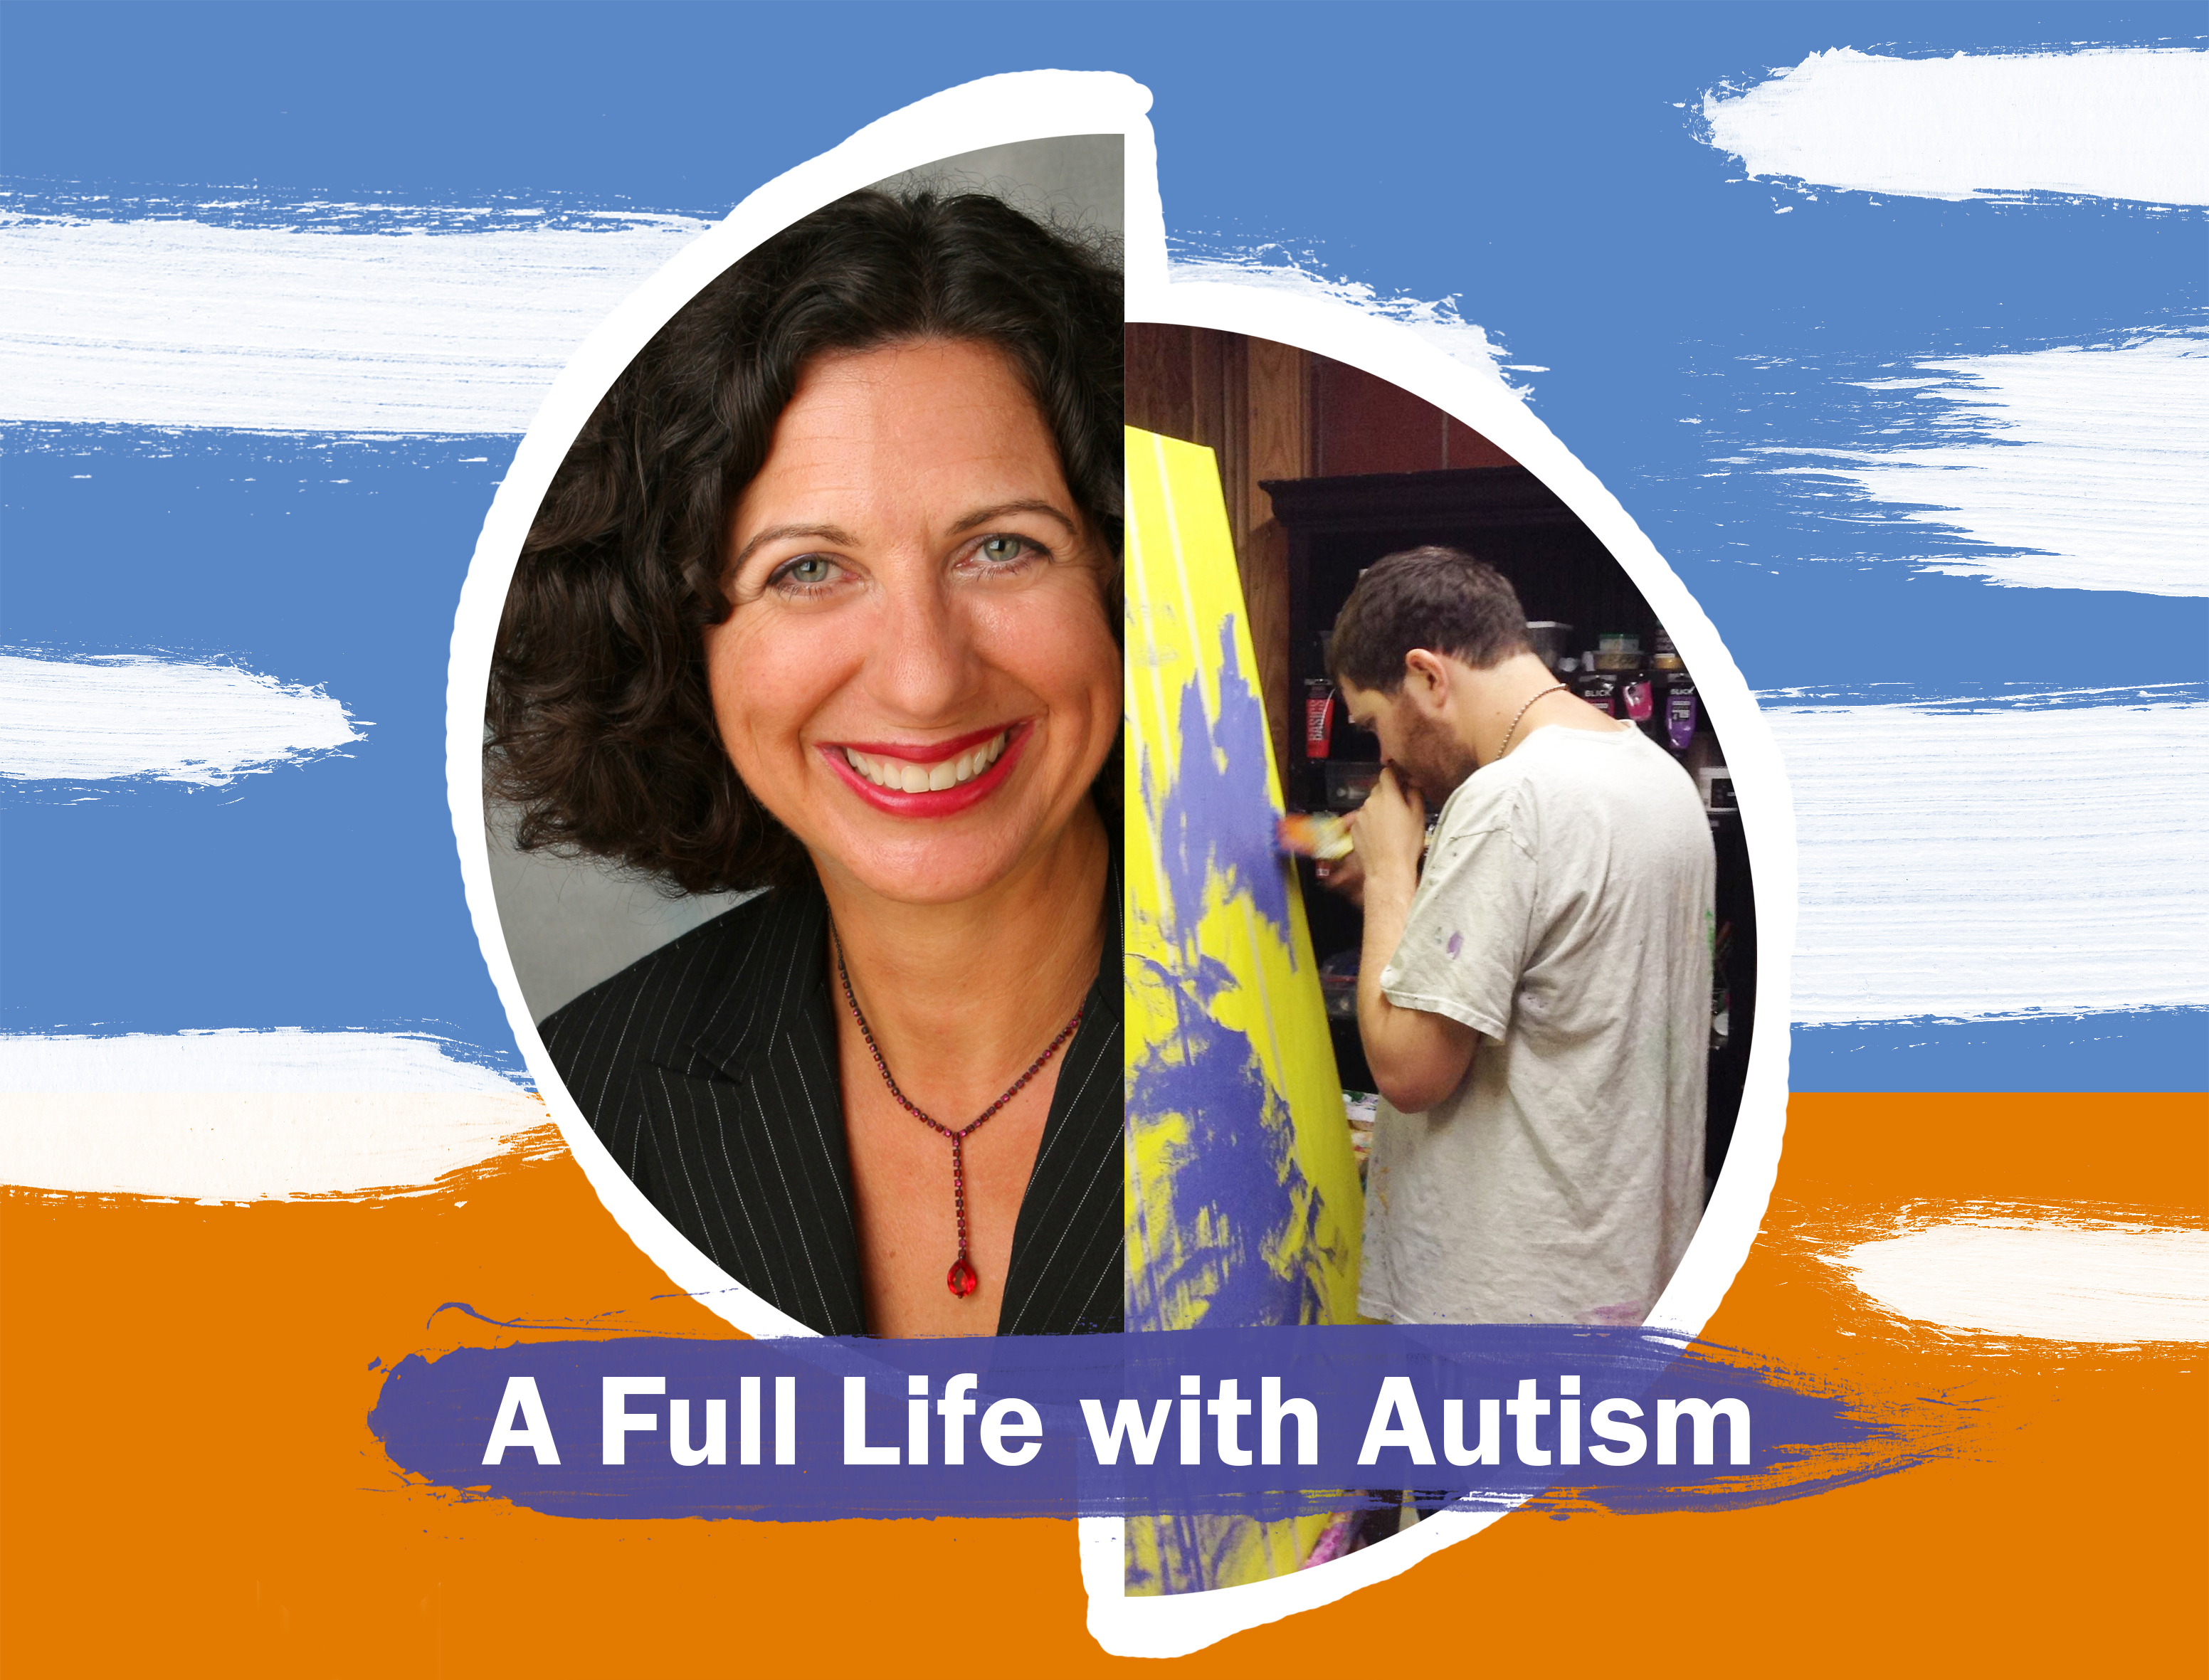 A Full Life with Autism - poster for special event.